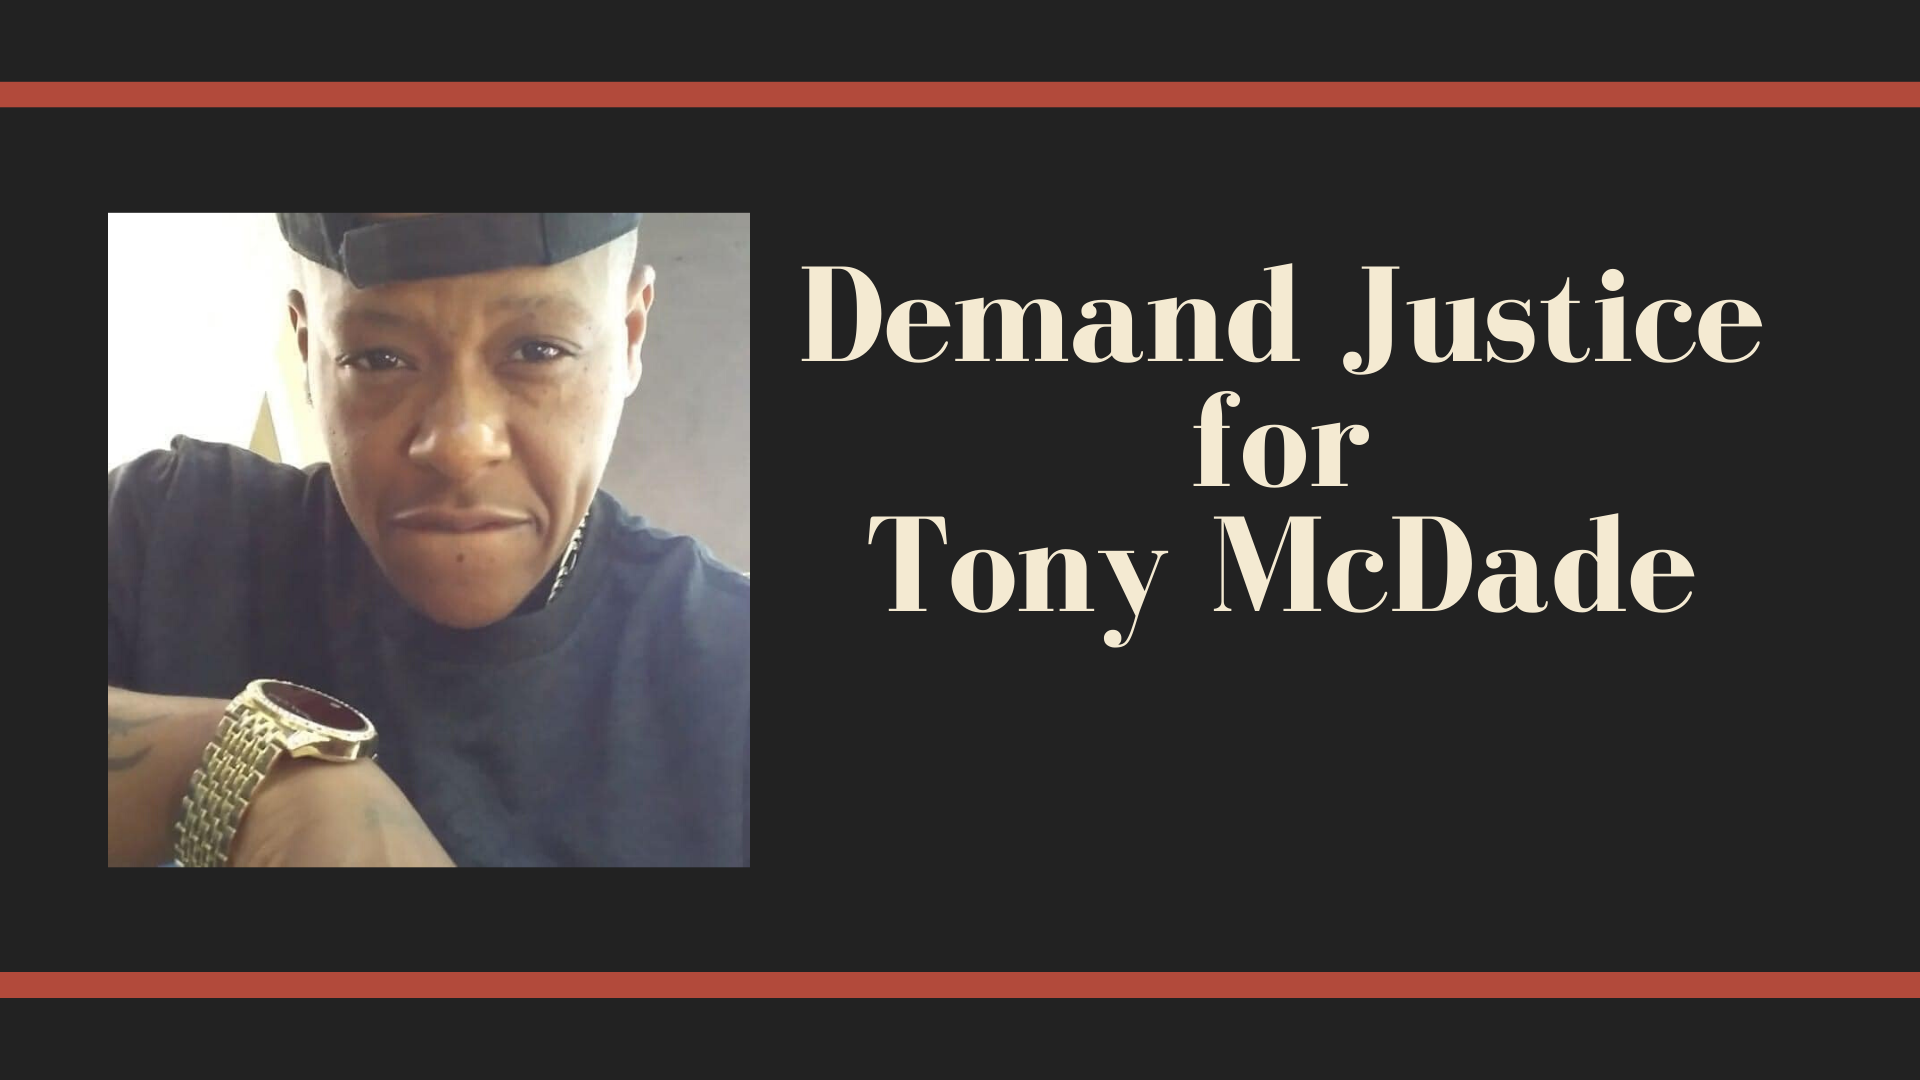 Justice_for_tony_mcdade_banner